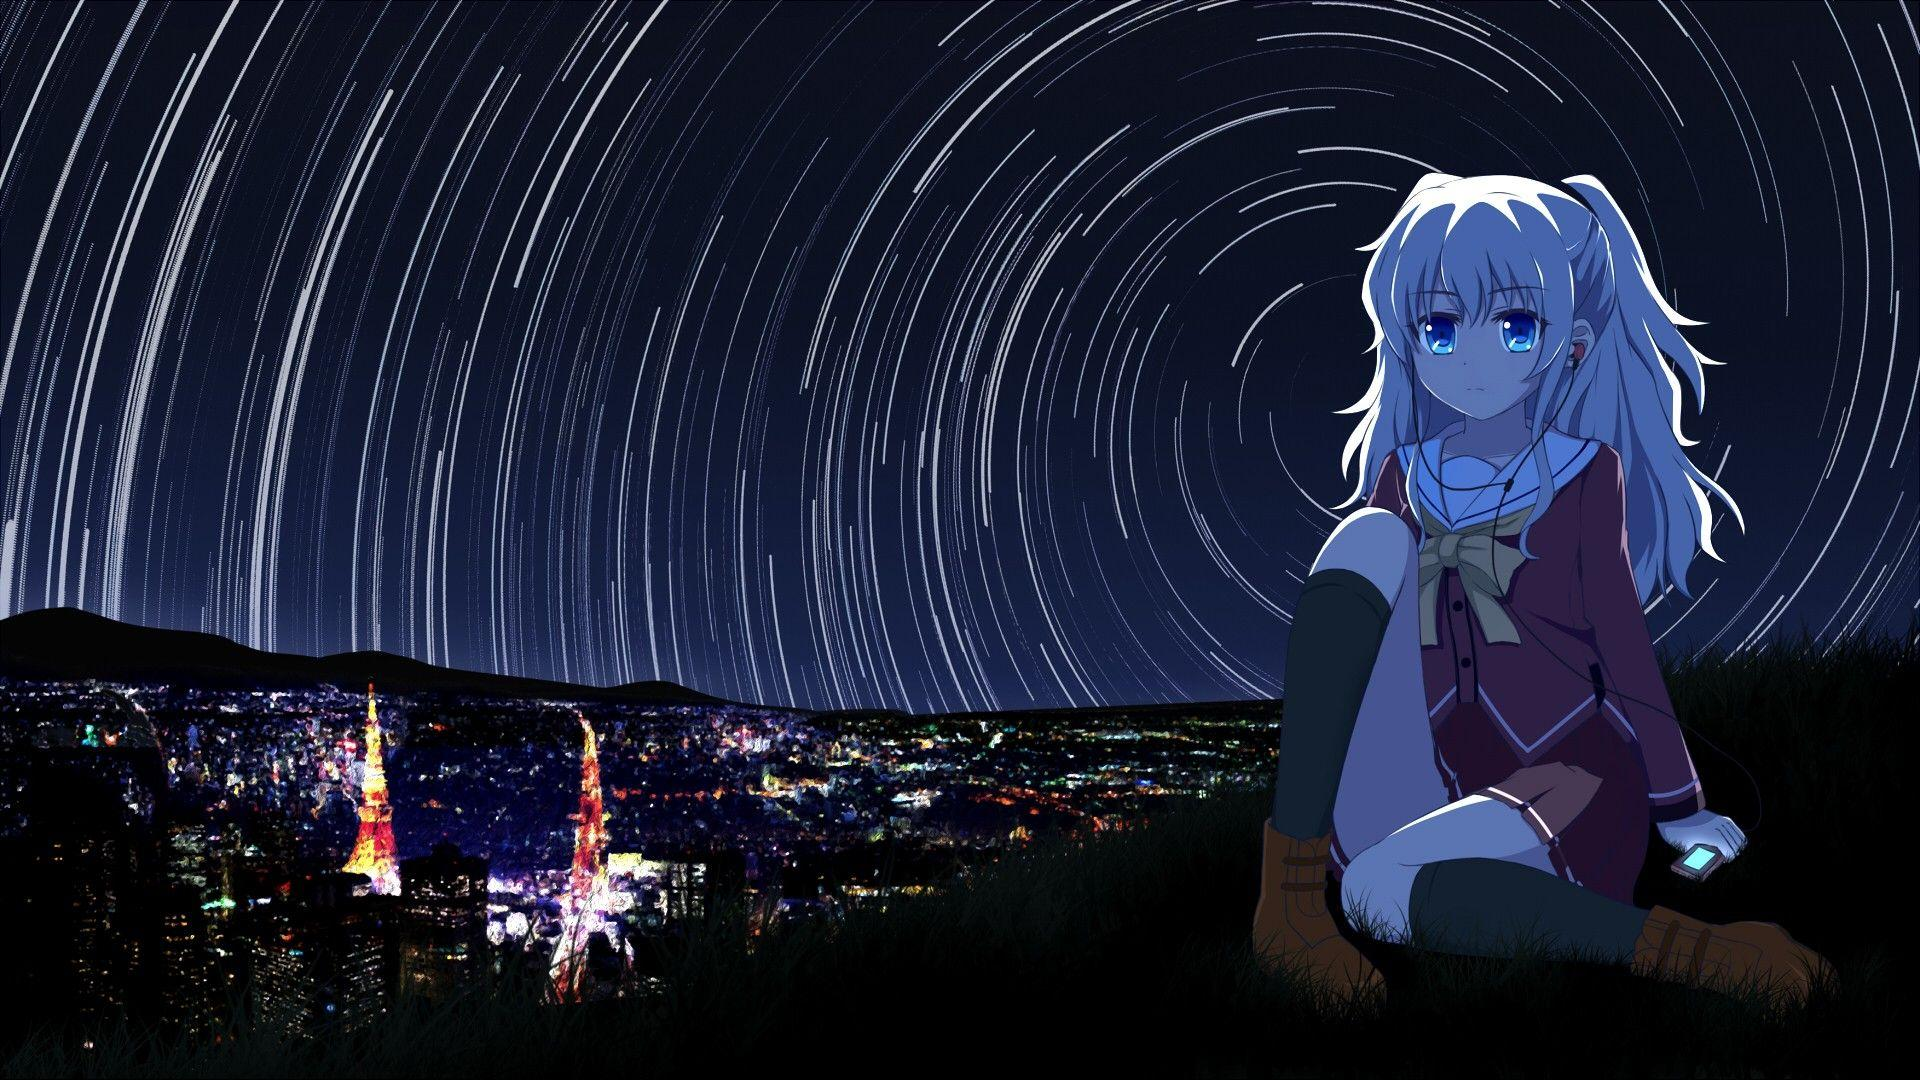 Charlotte Wallpapers - Wallpaper Cave